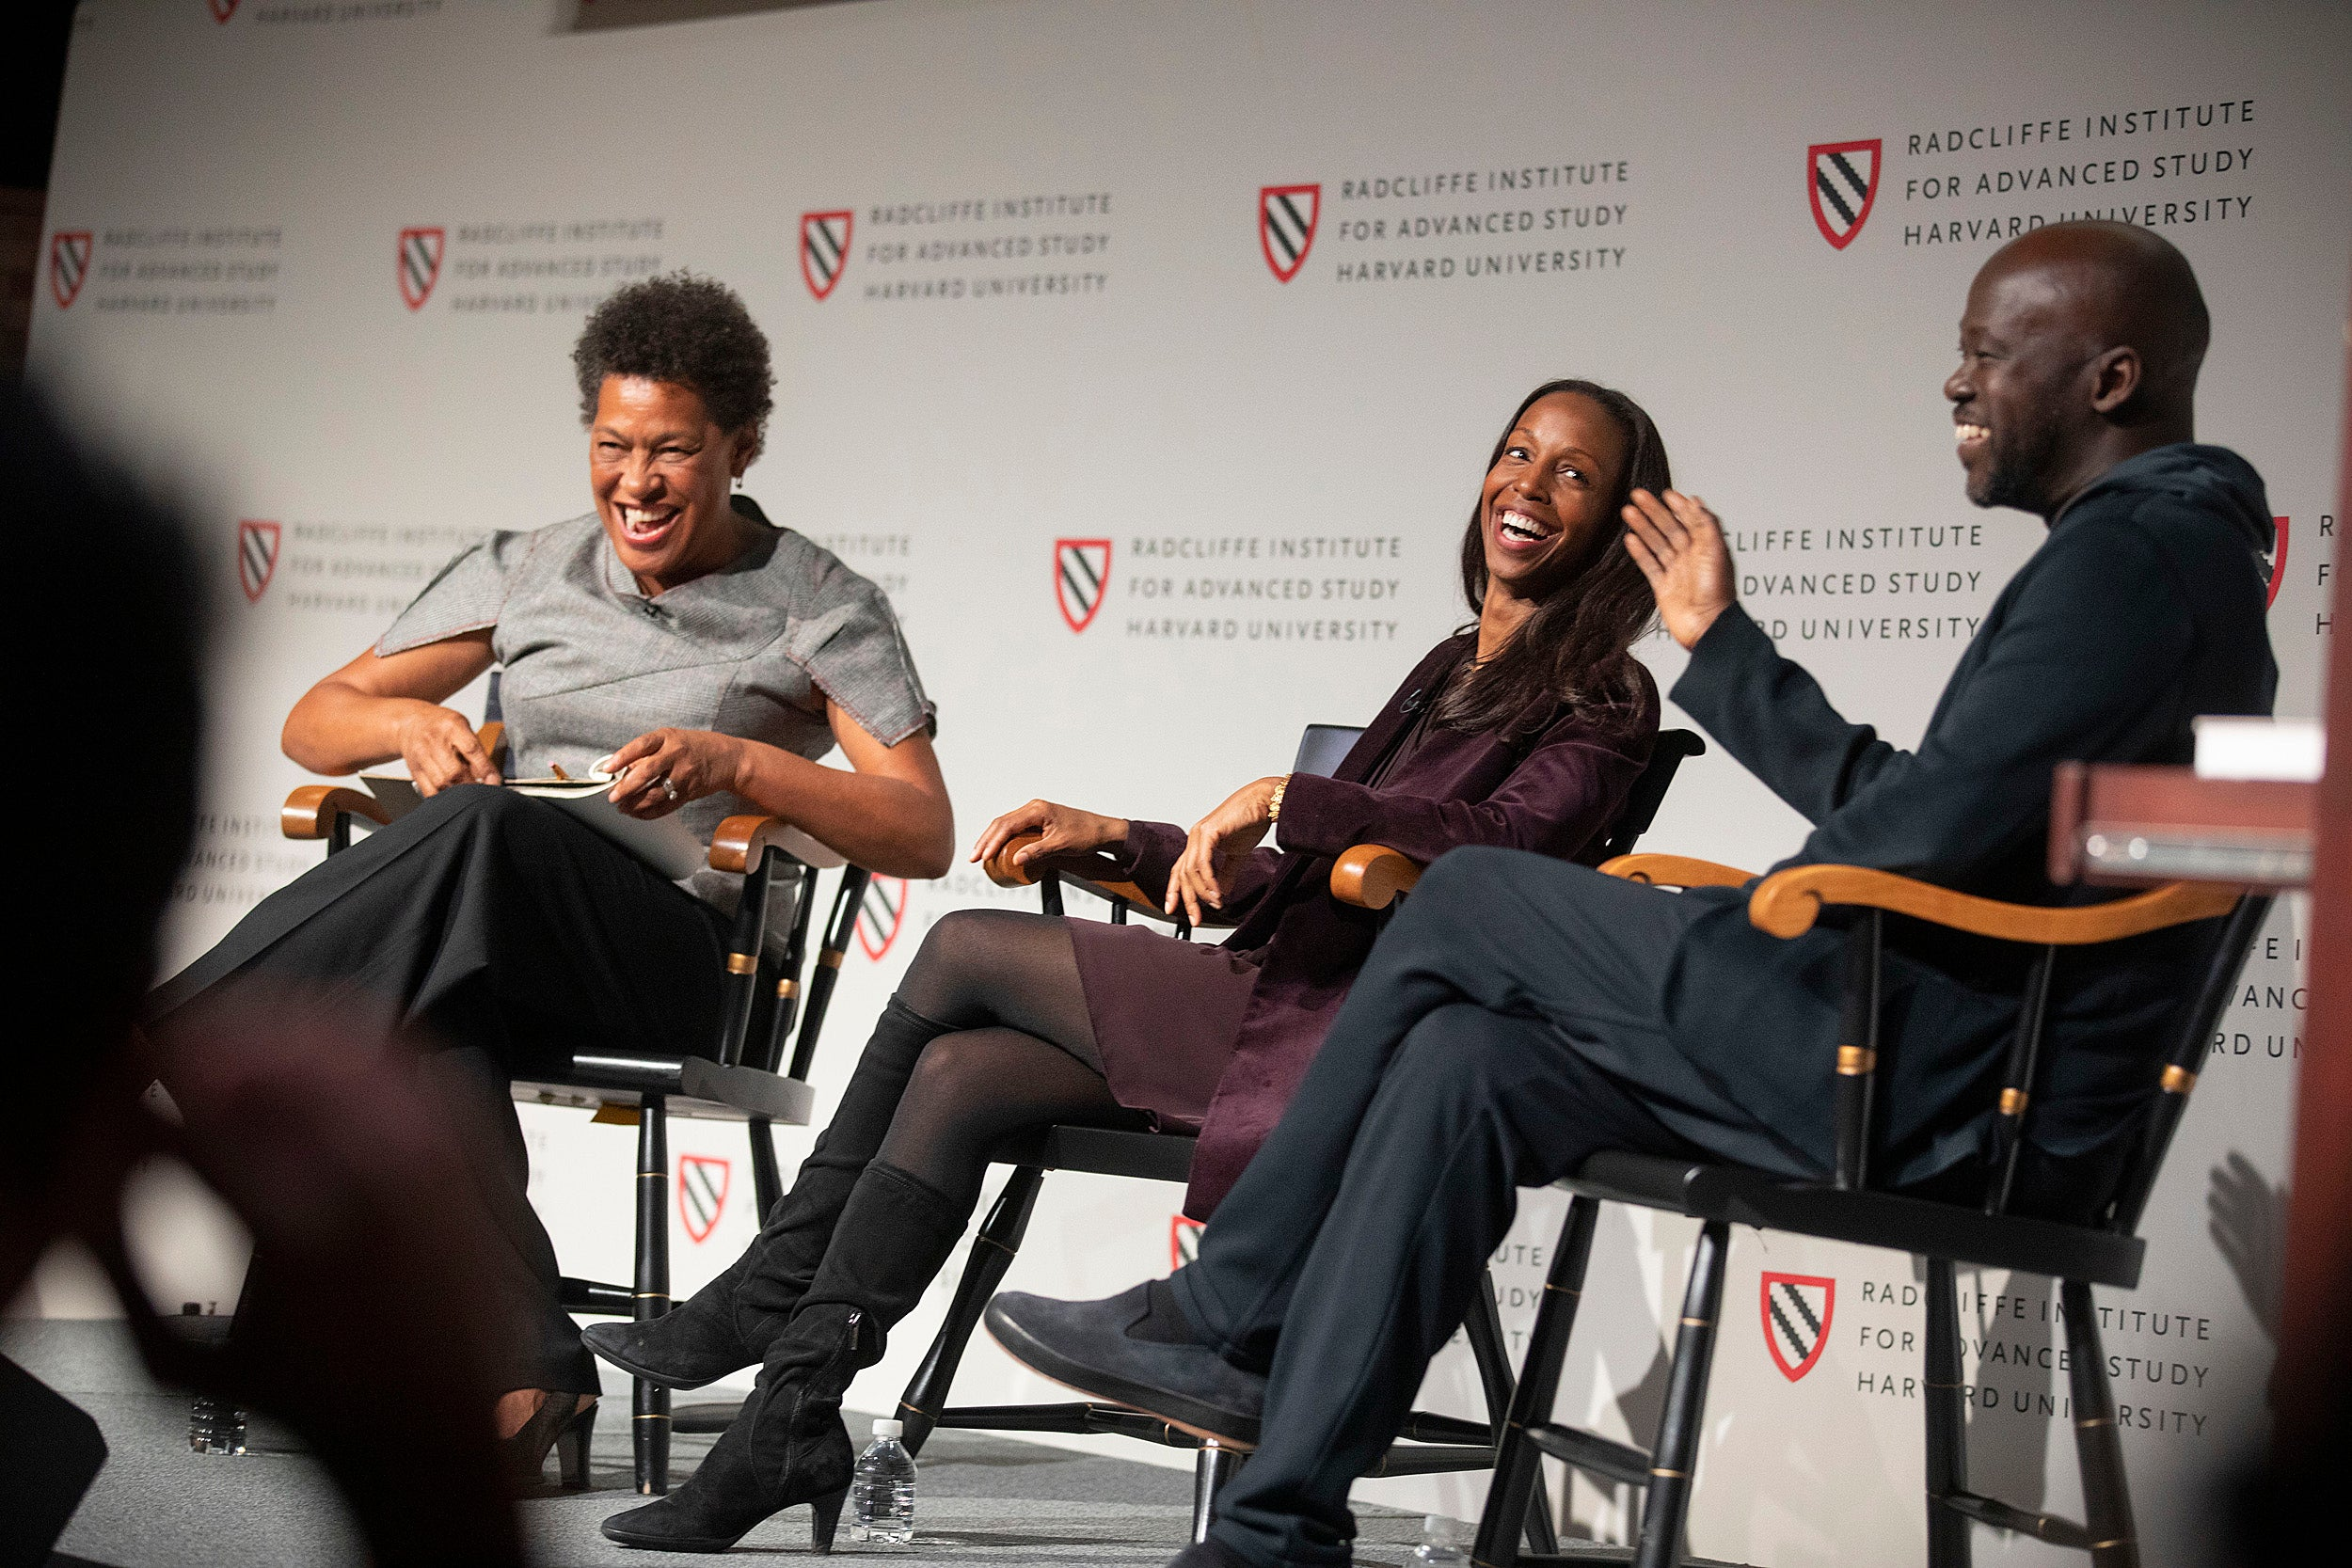 """Panelists Carrie Mae Weems (from left), Sarah Lewis, and David Adjaye share a laugh onstage at the """"Vision & Justice"""" conference."""